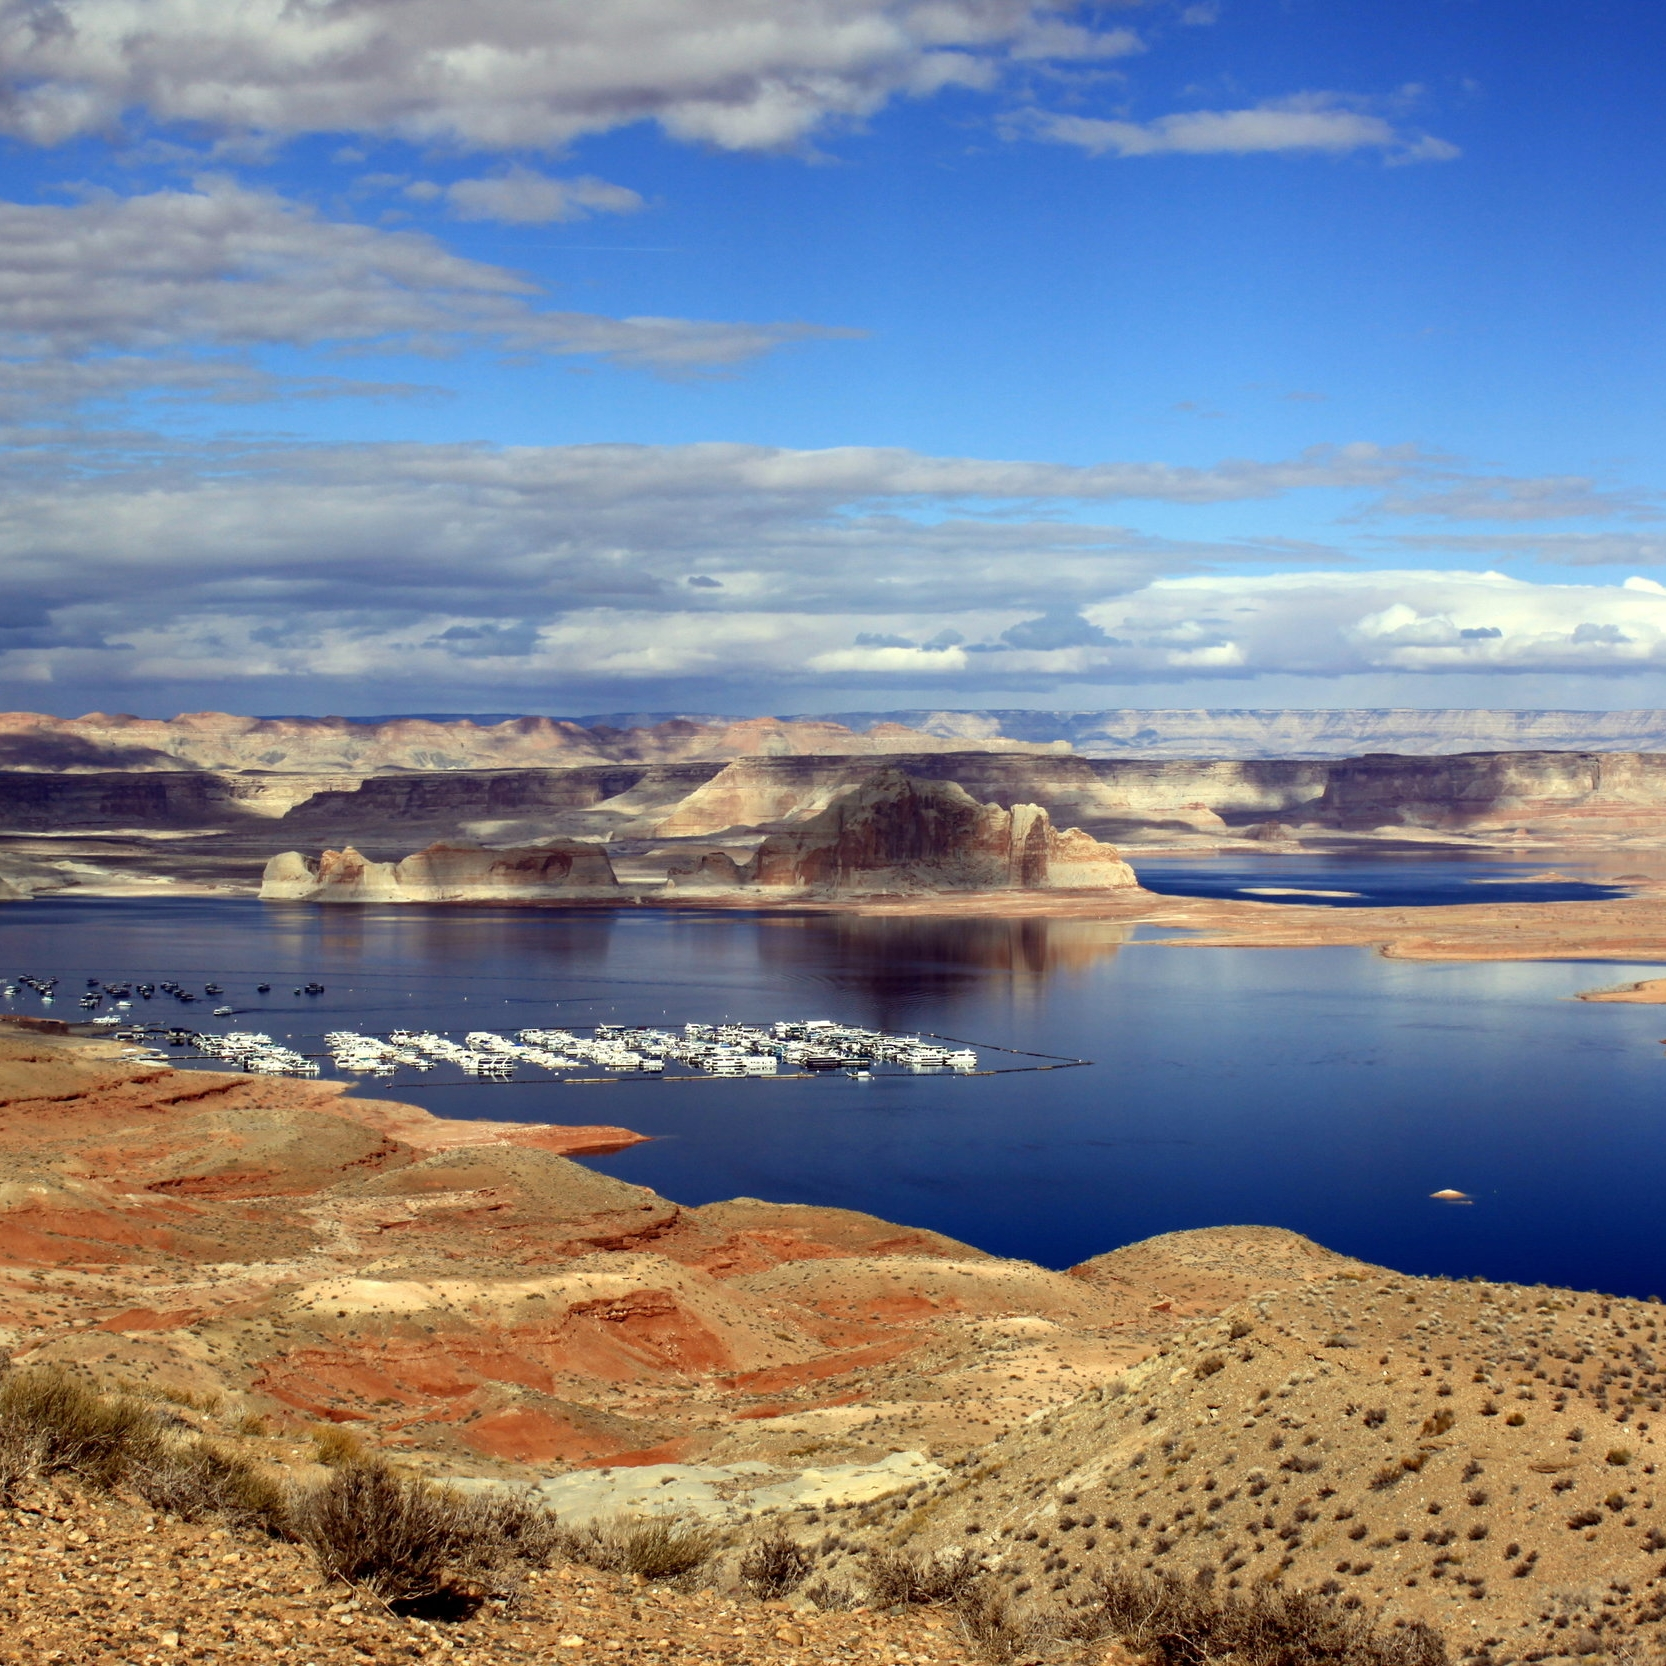 Views of Lake Powell from Highway 89